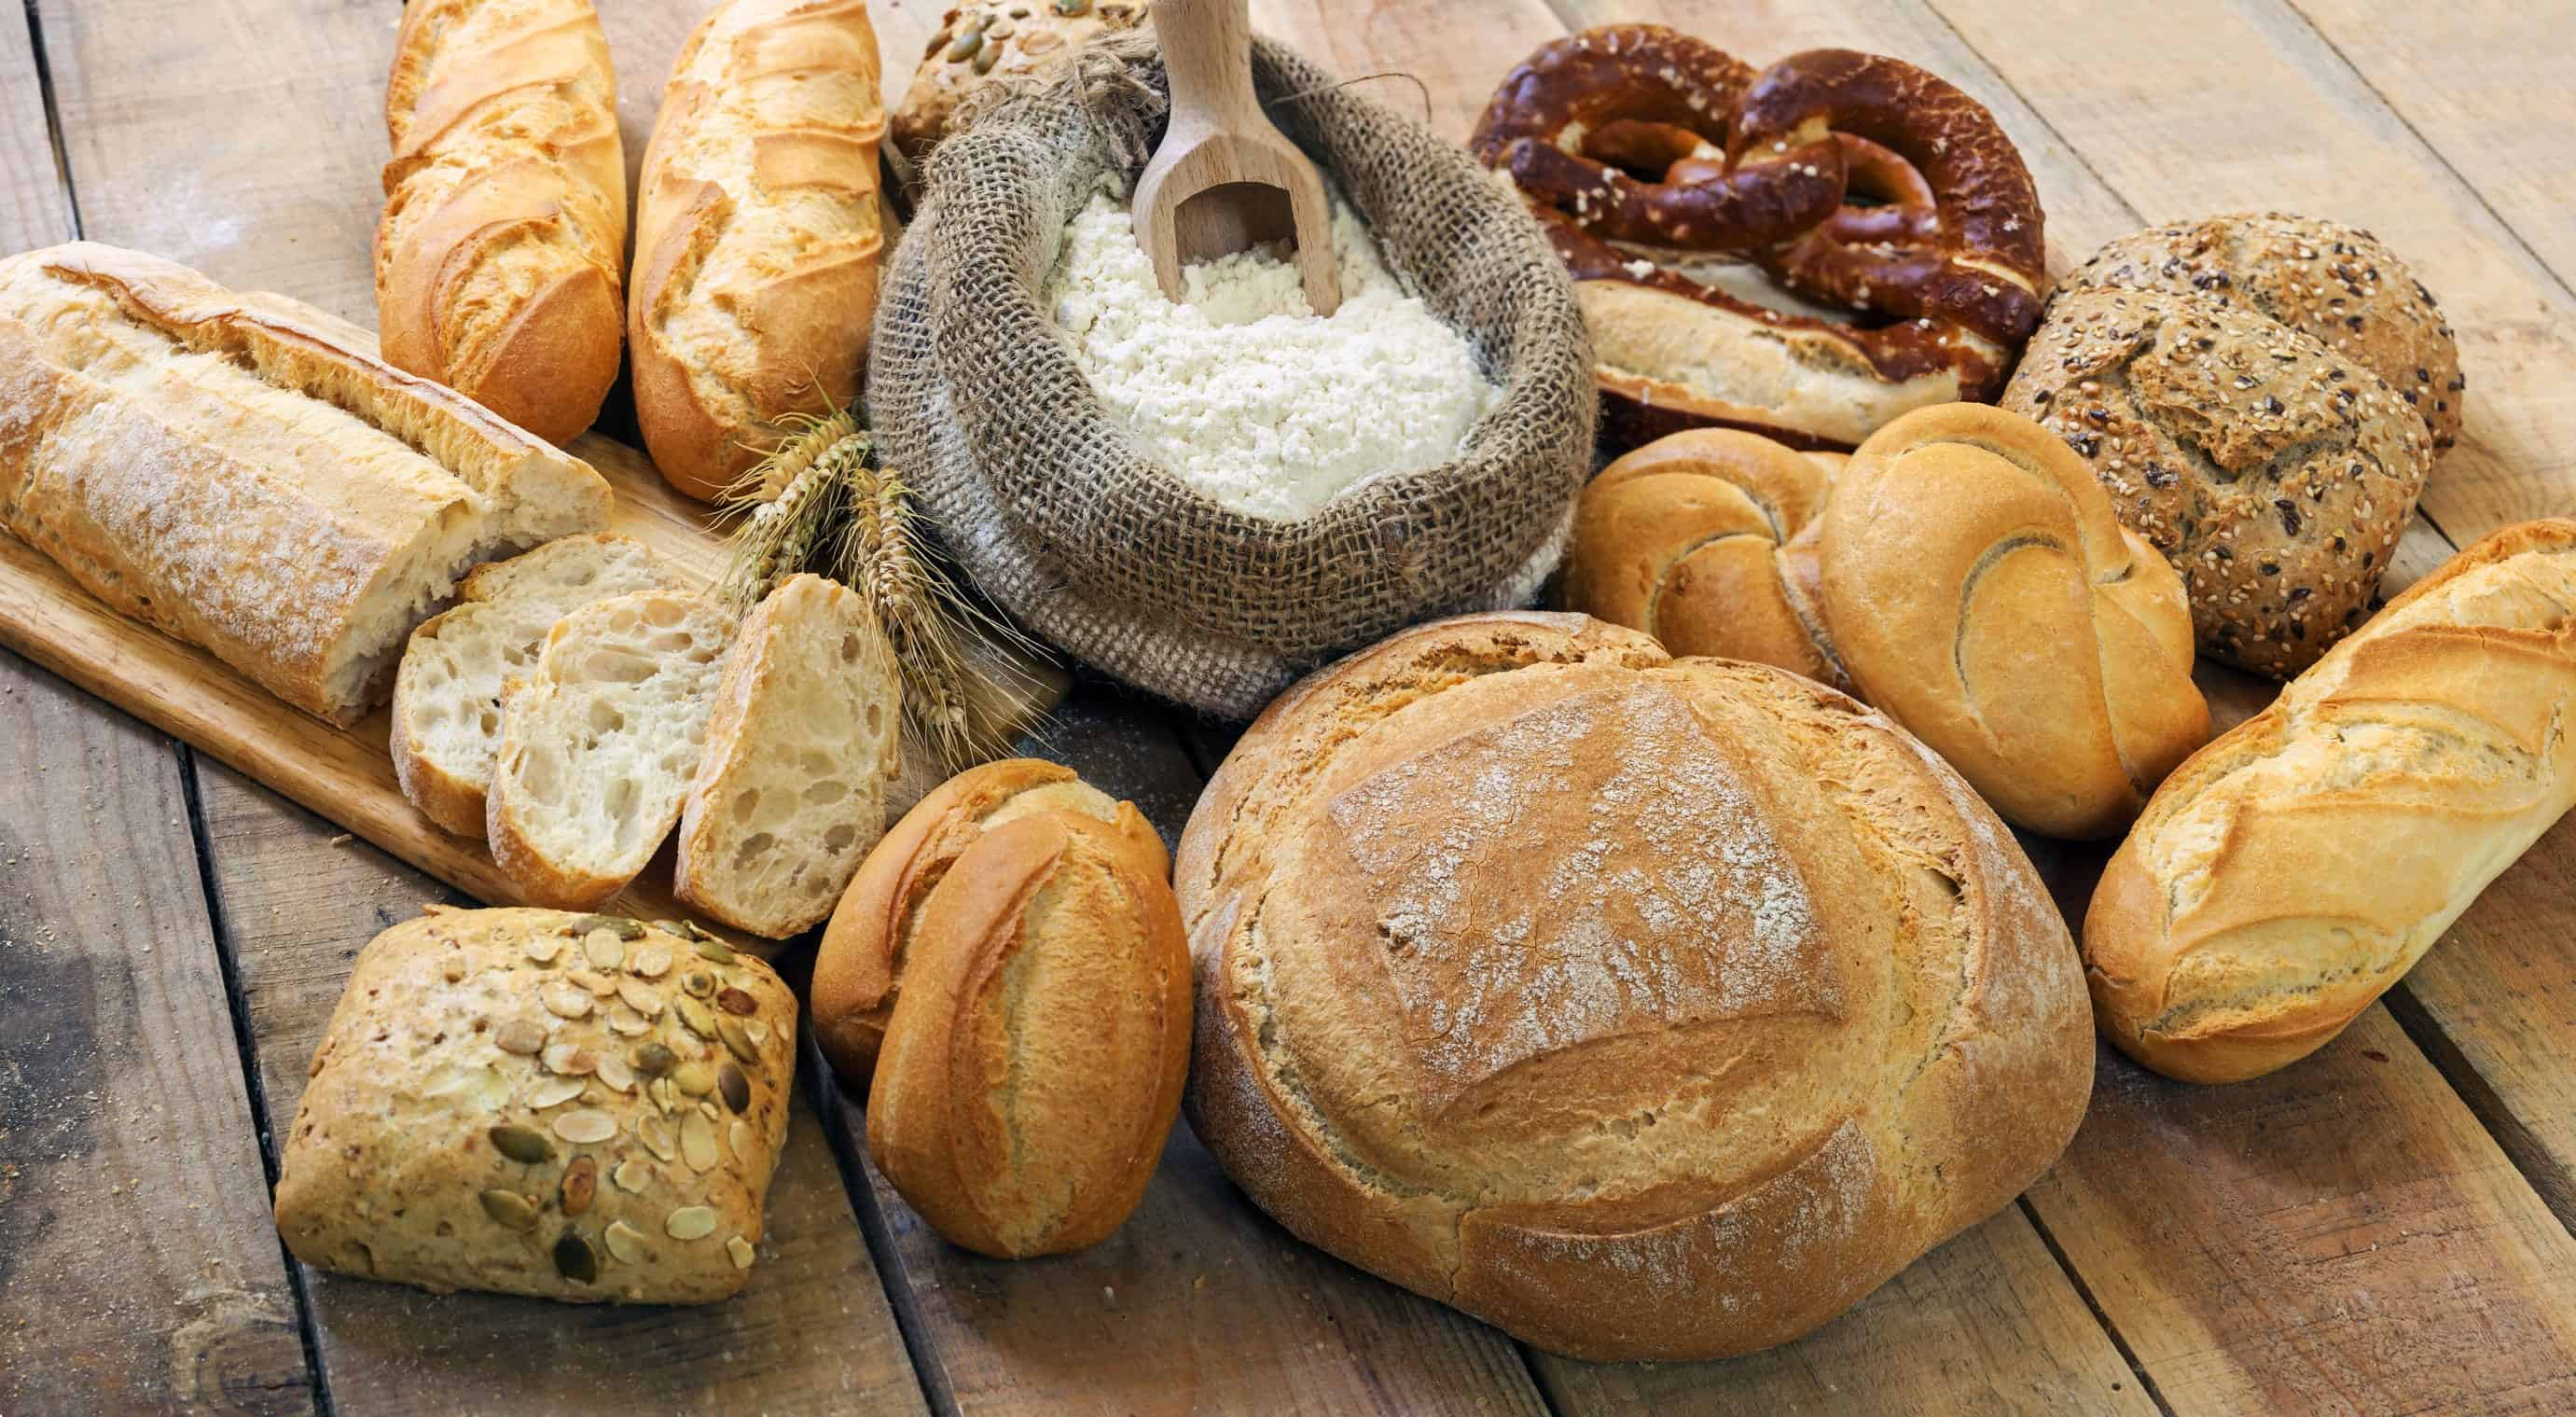 The Best Bread For You: Why One Type Doesn't Fit All